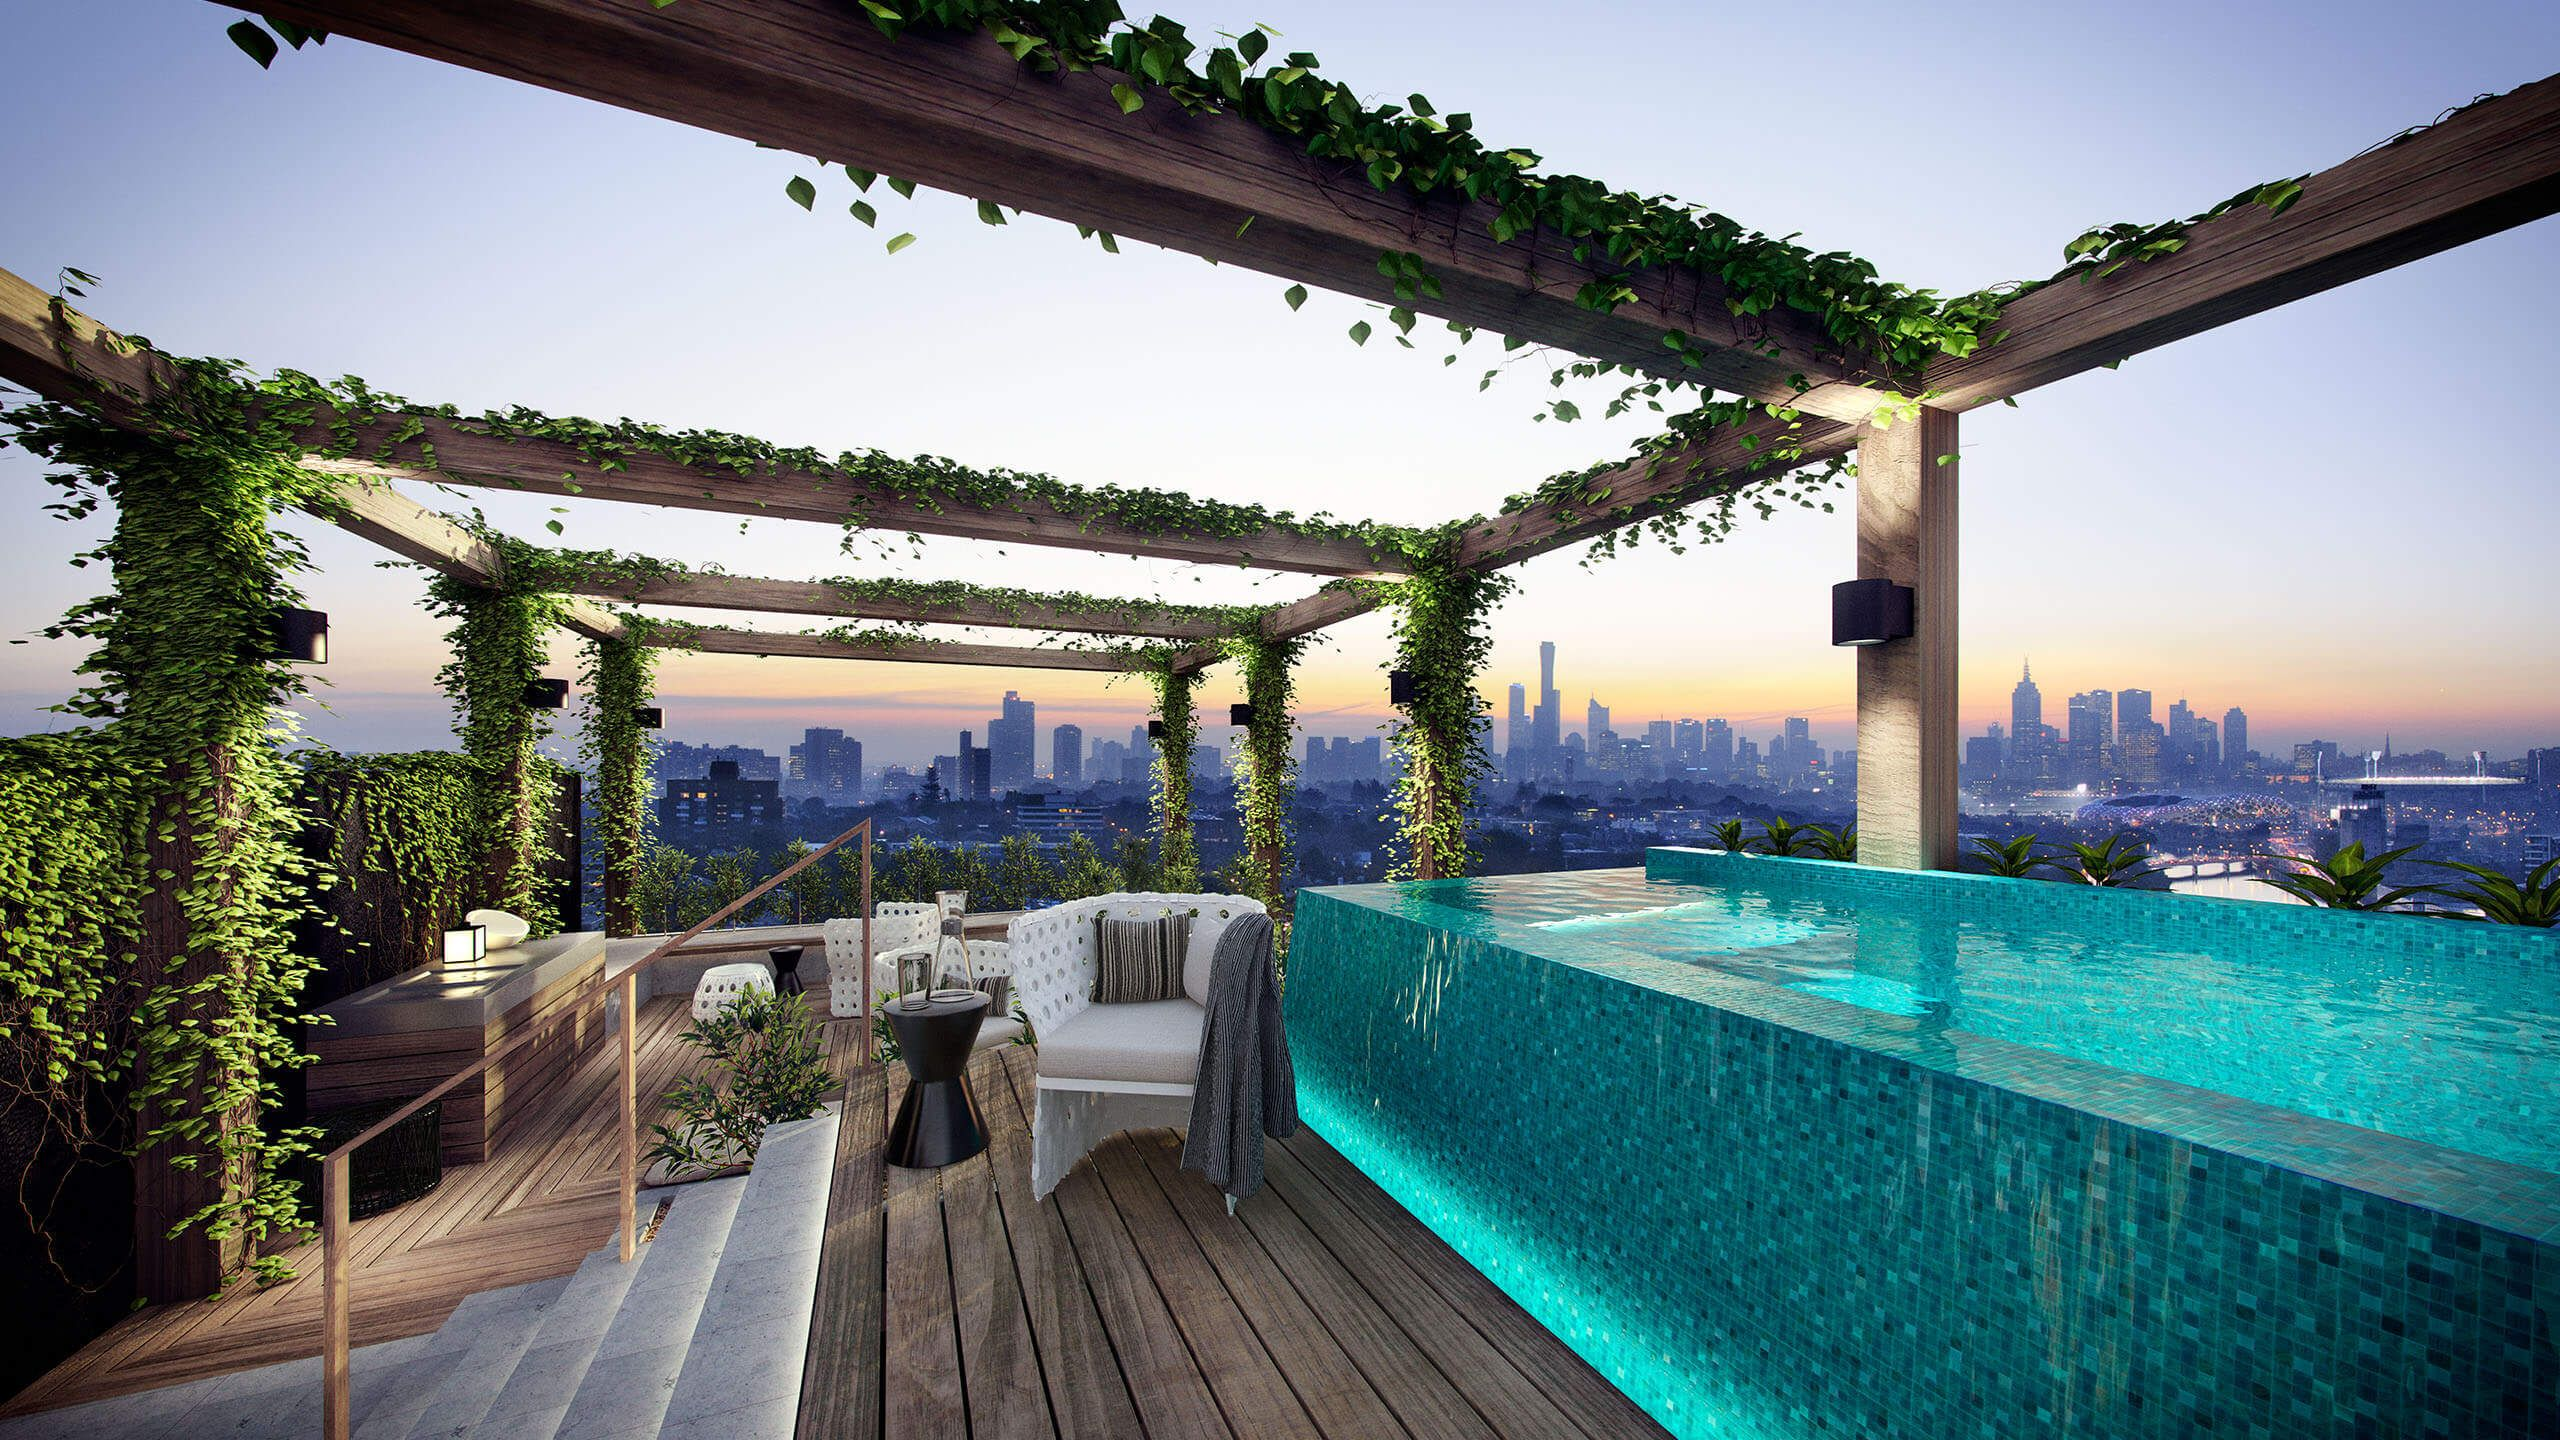 Some Of The Best Rooftop Swimming Pool Design Ideas Rooftop Terrace Design Amazing Apartments Roof Terrace Design